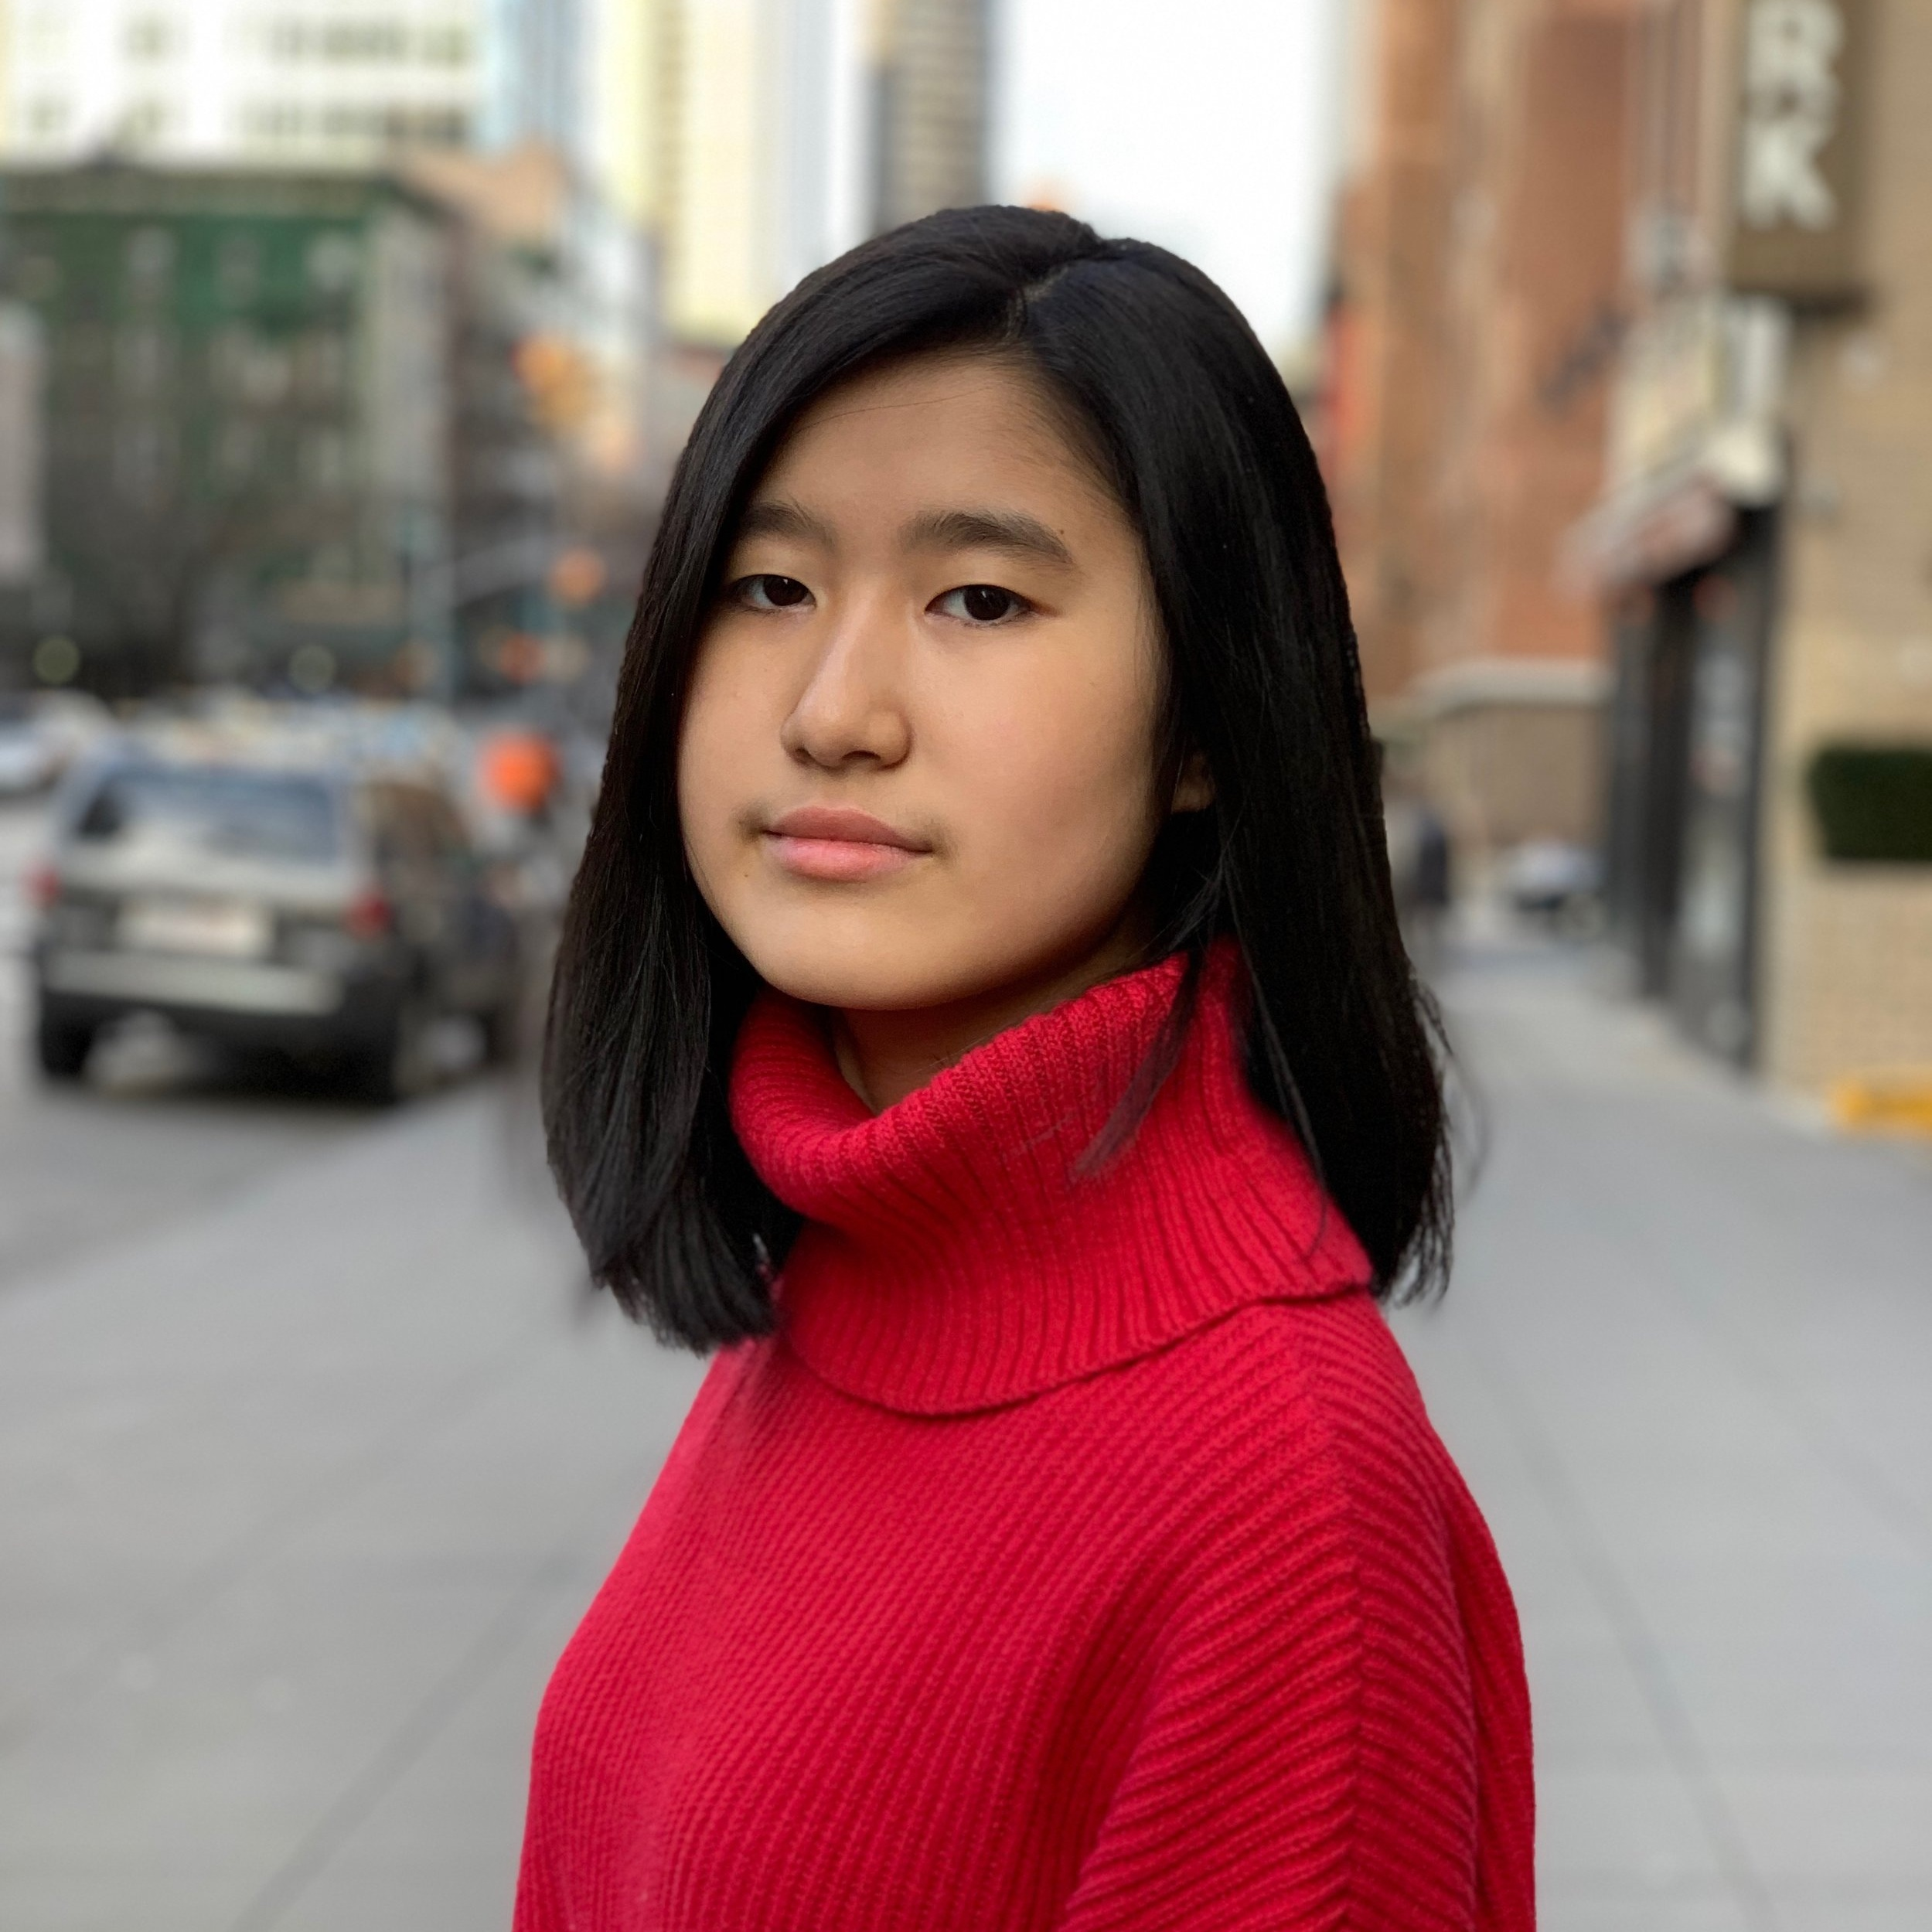 Emma Yang stands outside on a city street, looking at the camera. She has medium length black hair and is wearing a red turtle neck.